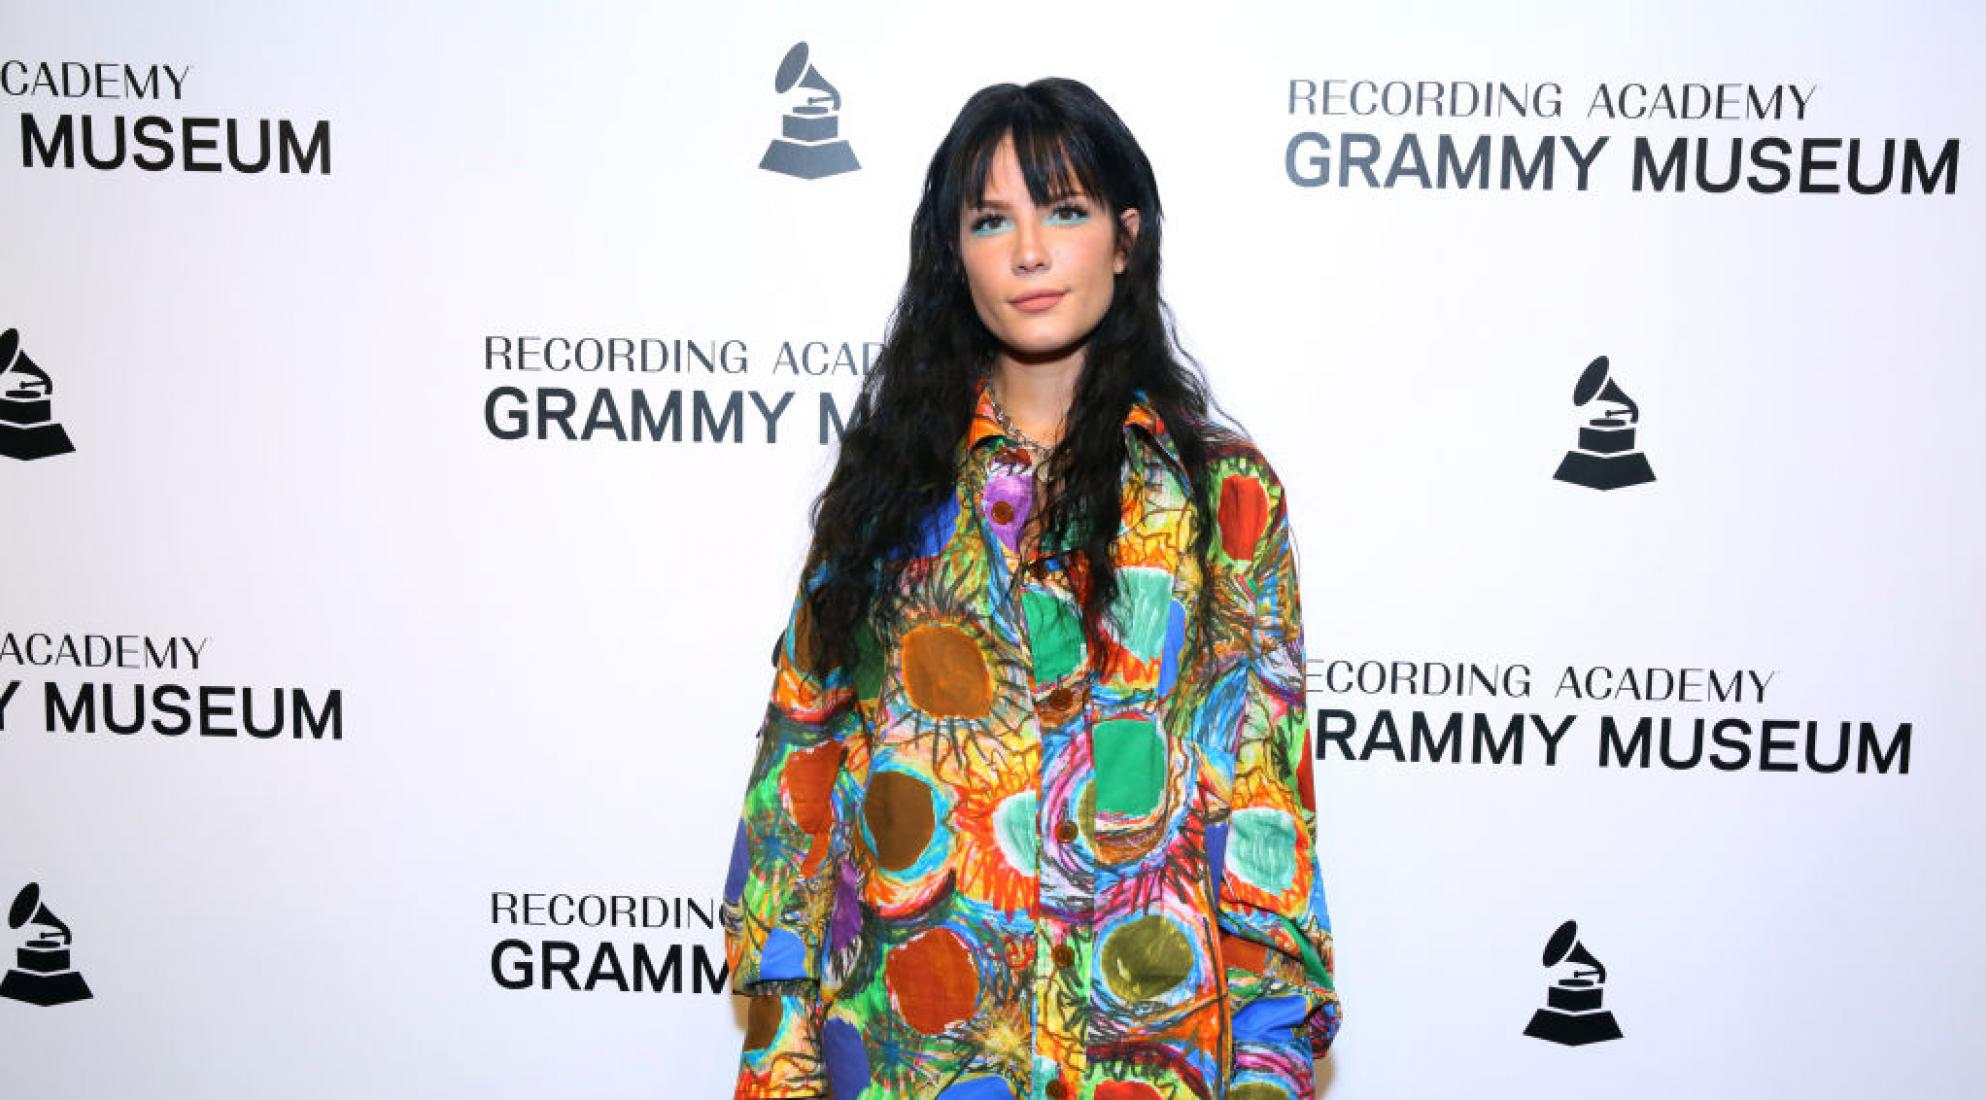 Halsey attends An Evening With Halsey at the GRAMMY Museum